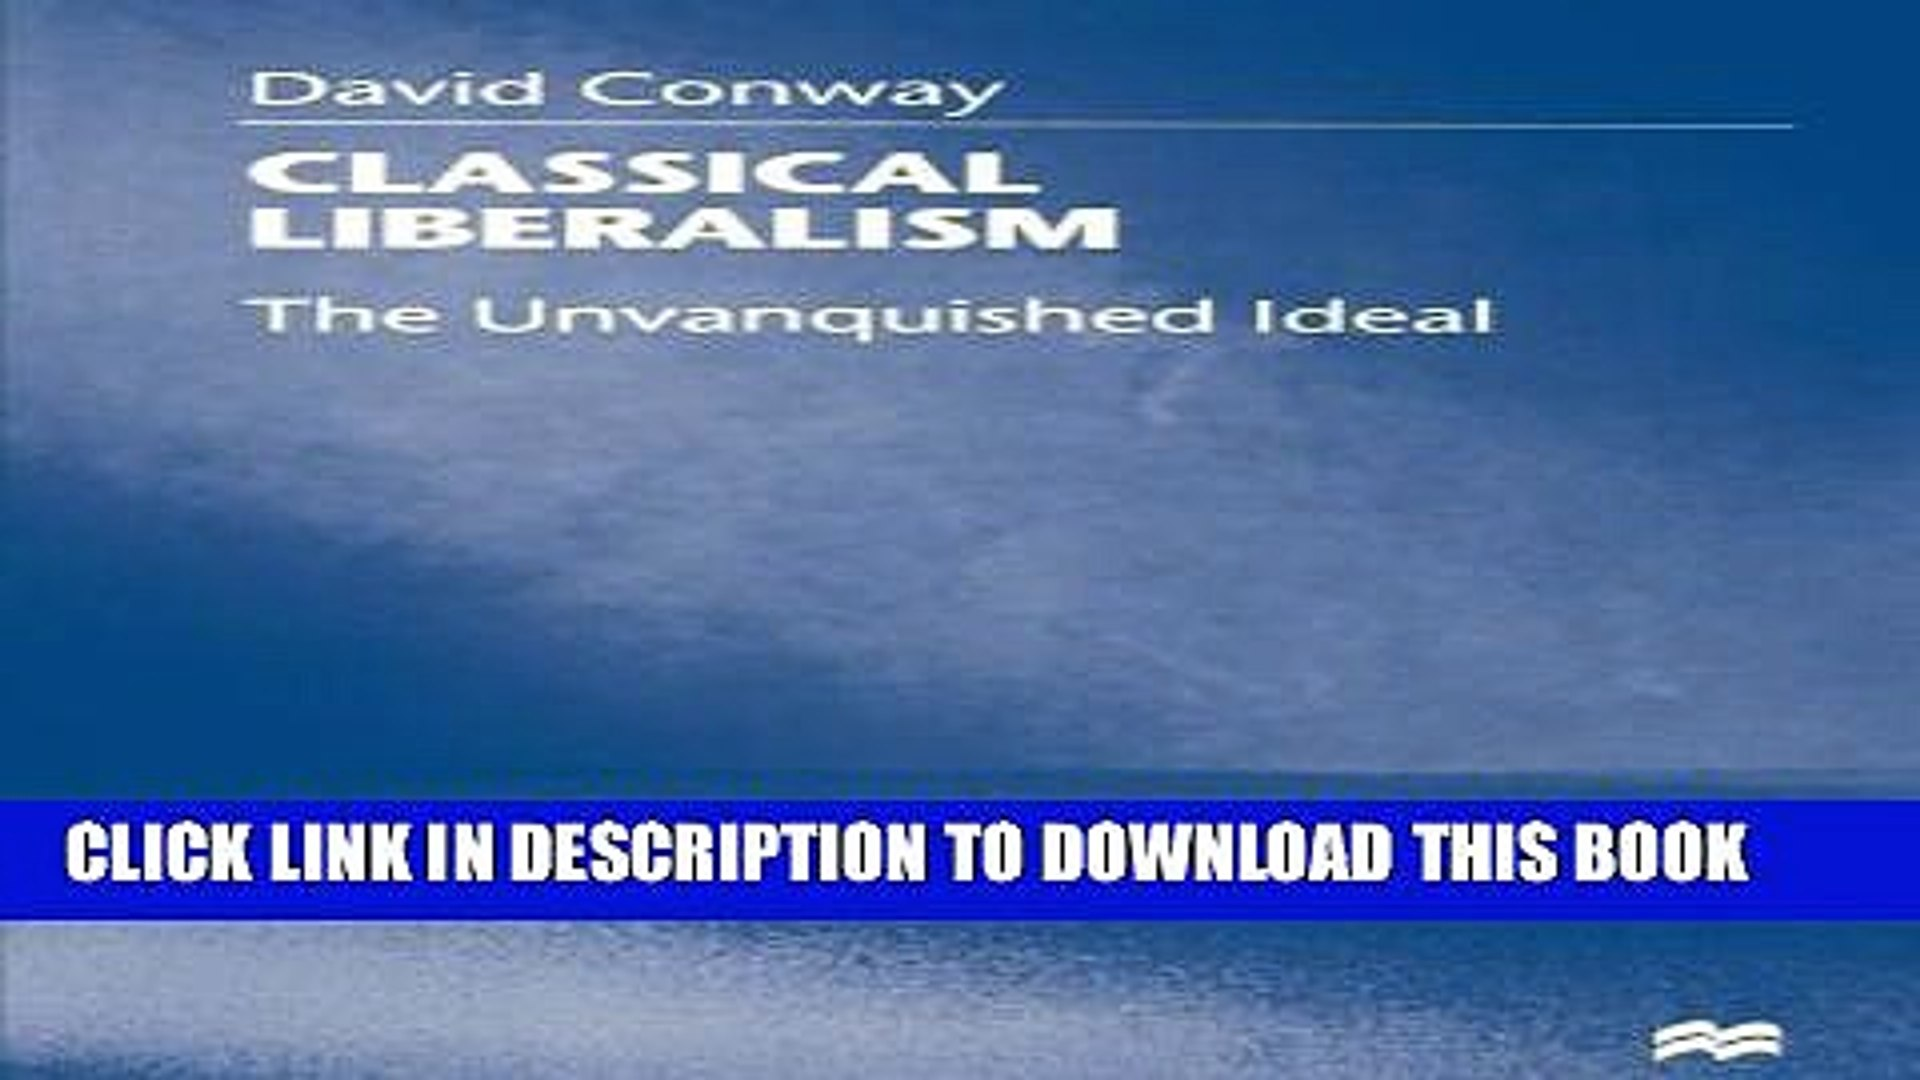 [PDF] Classical Liberalism: The Unvanquished Ideal Popular Online